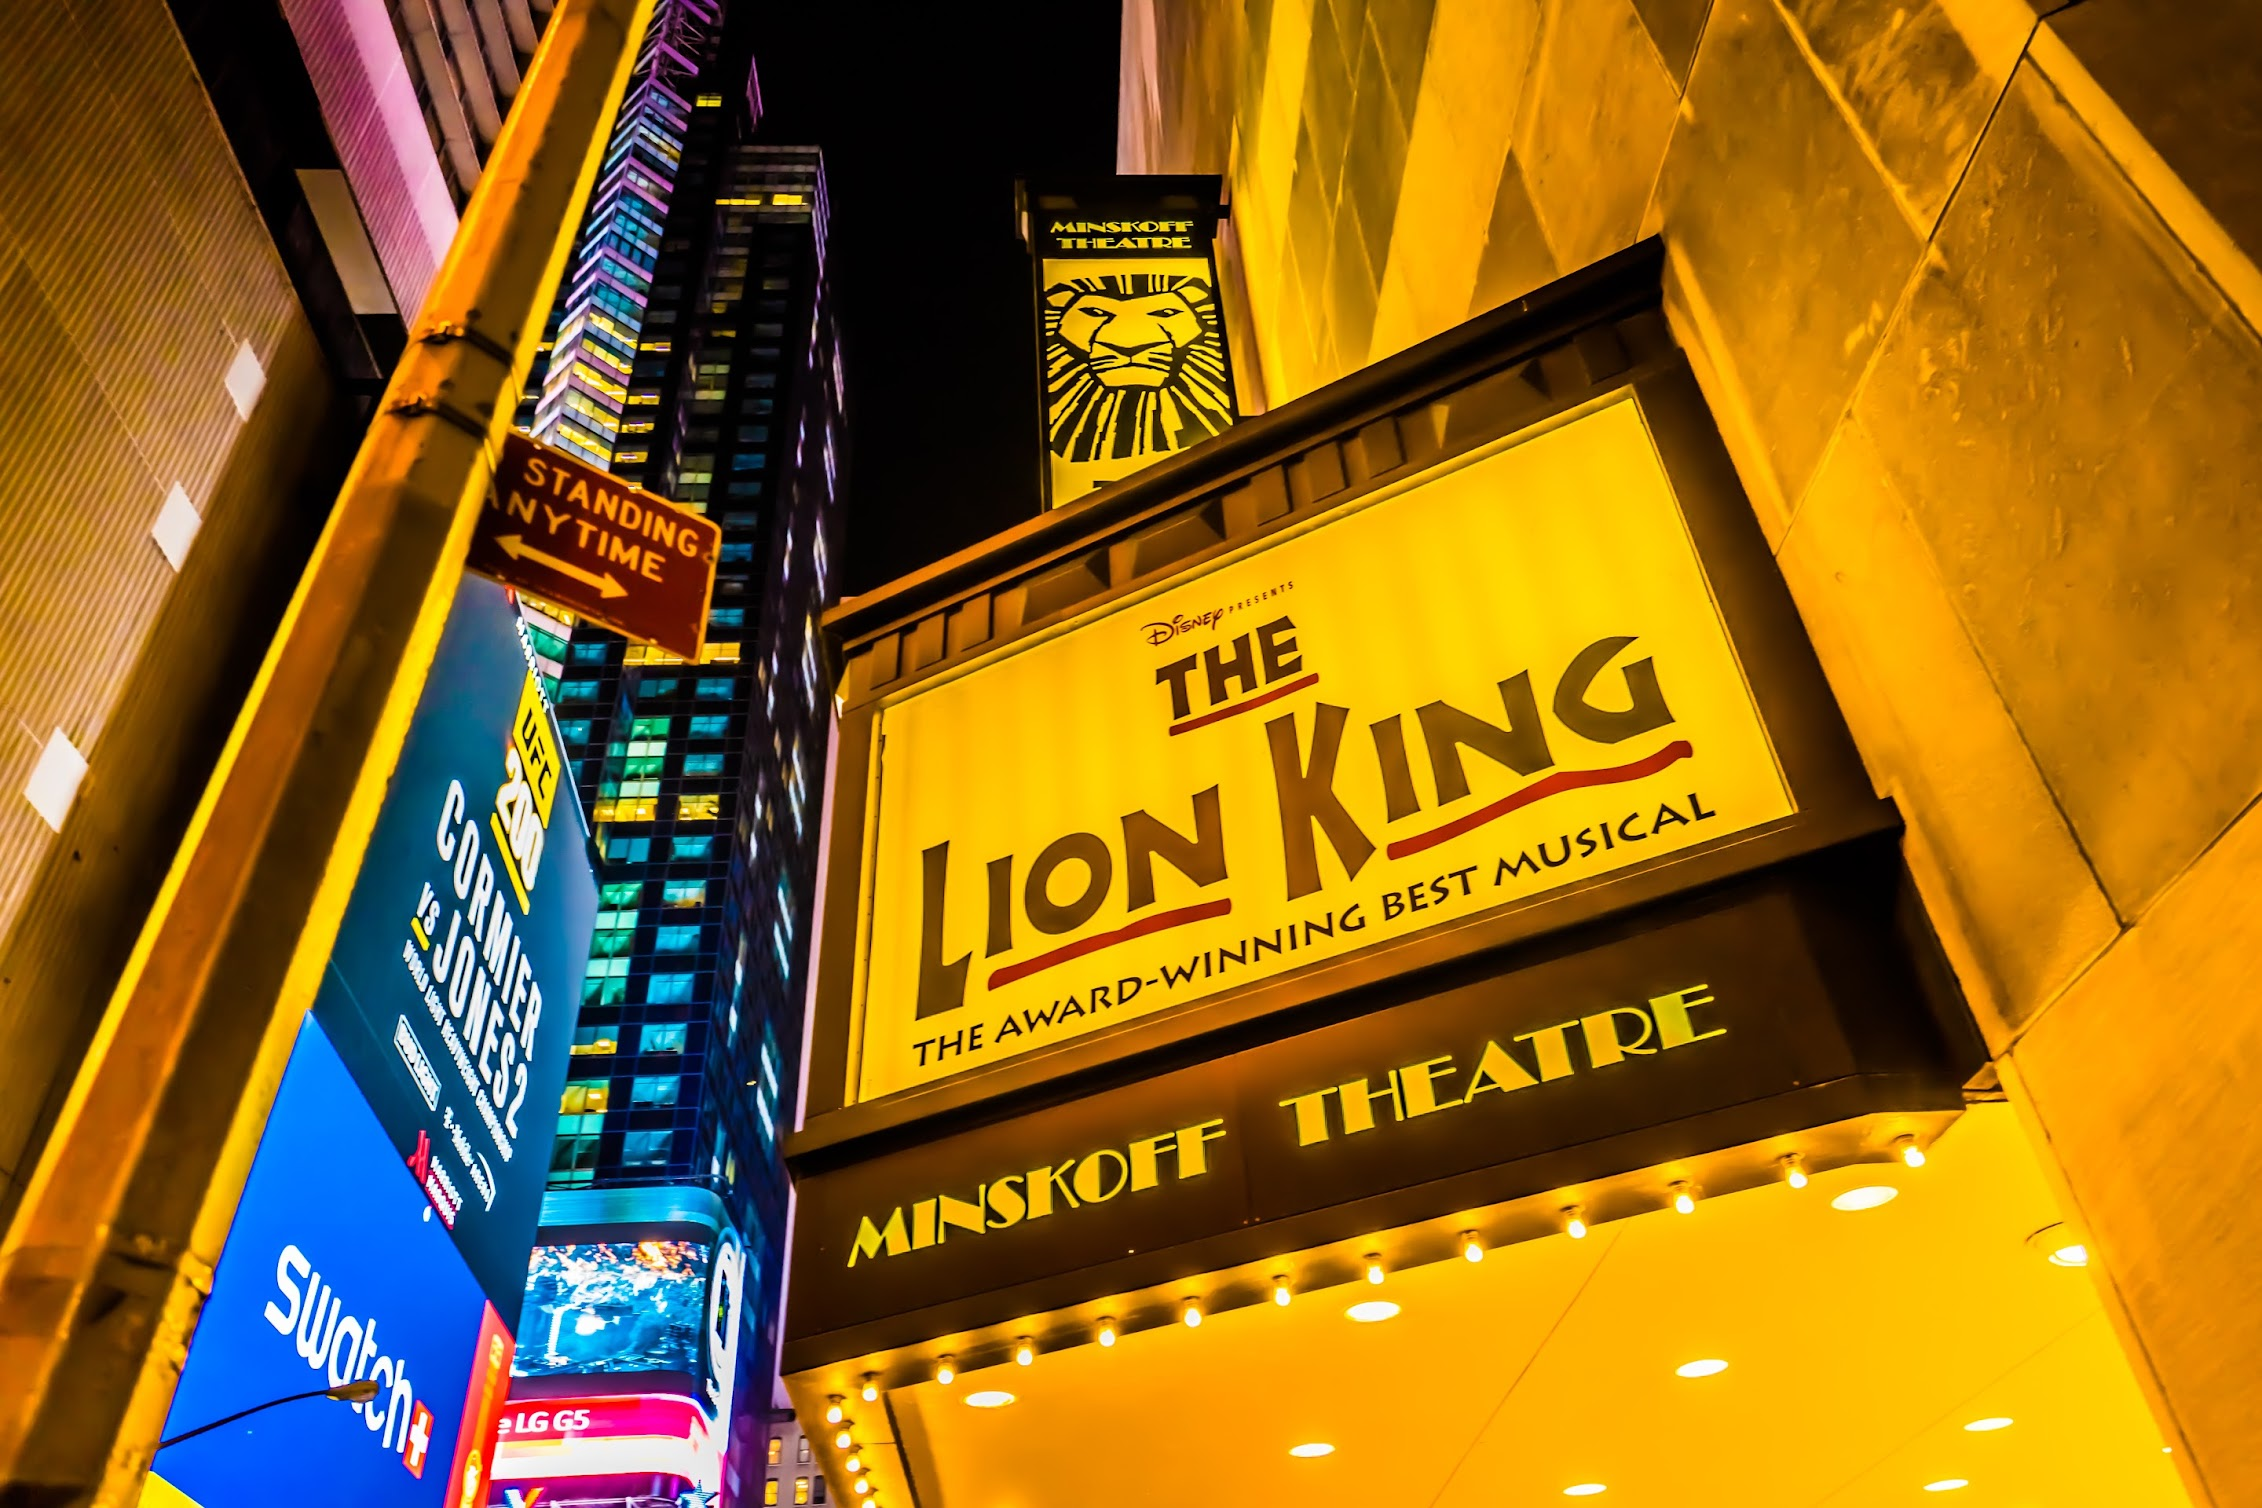 Broadway musical Lion King